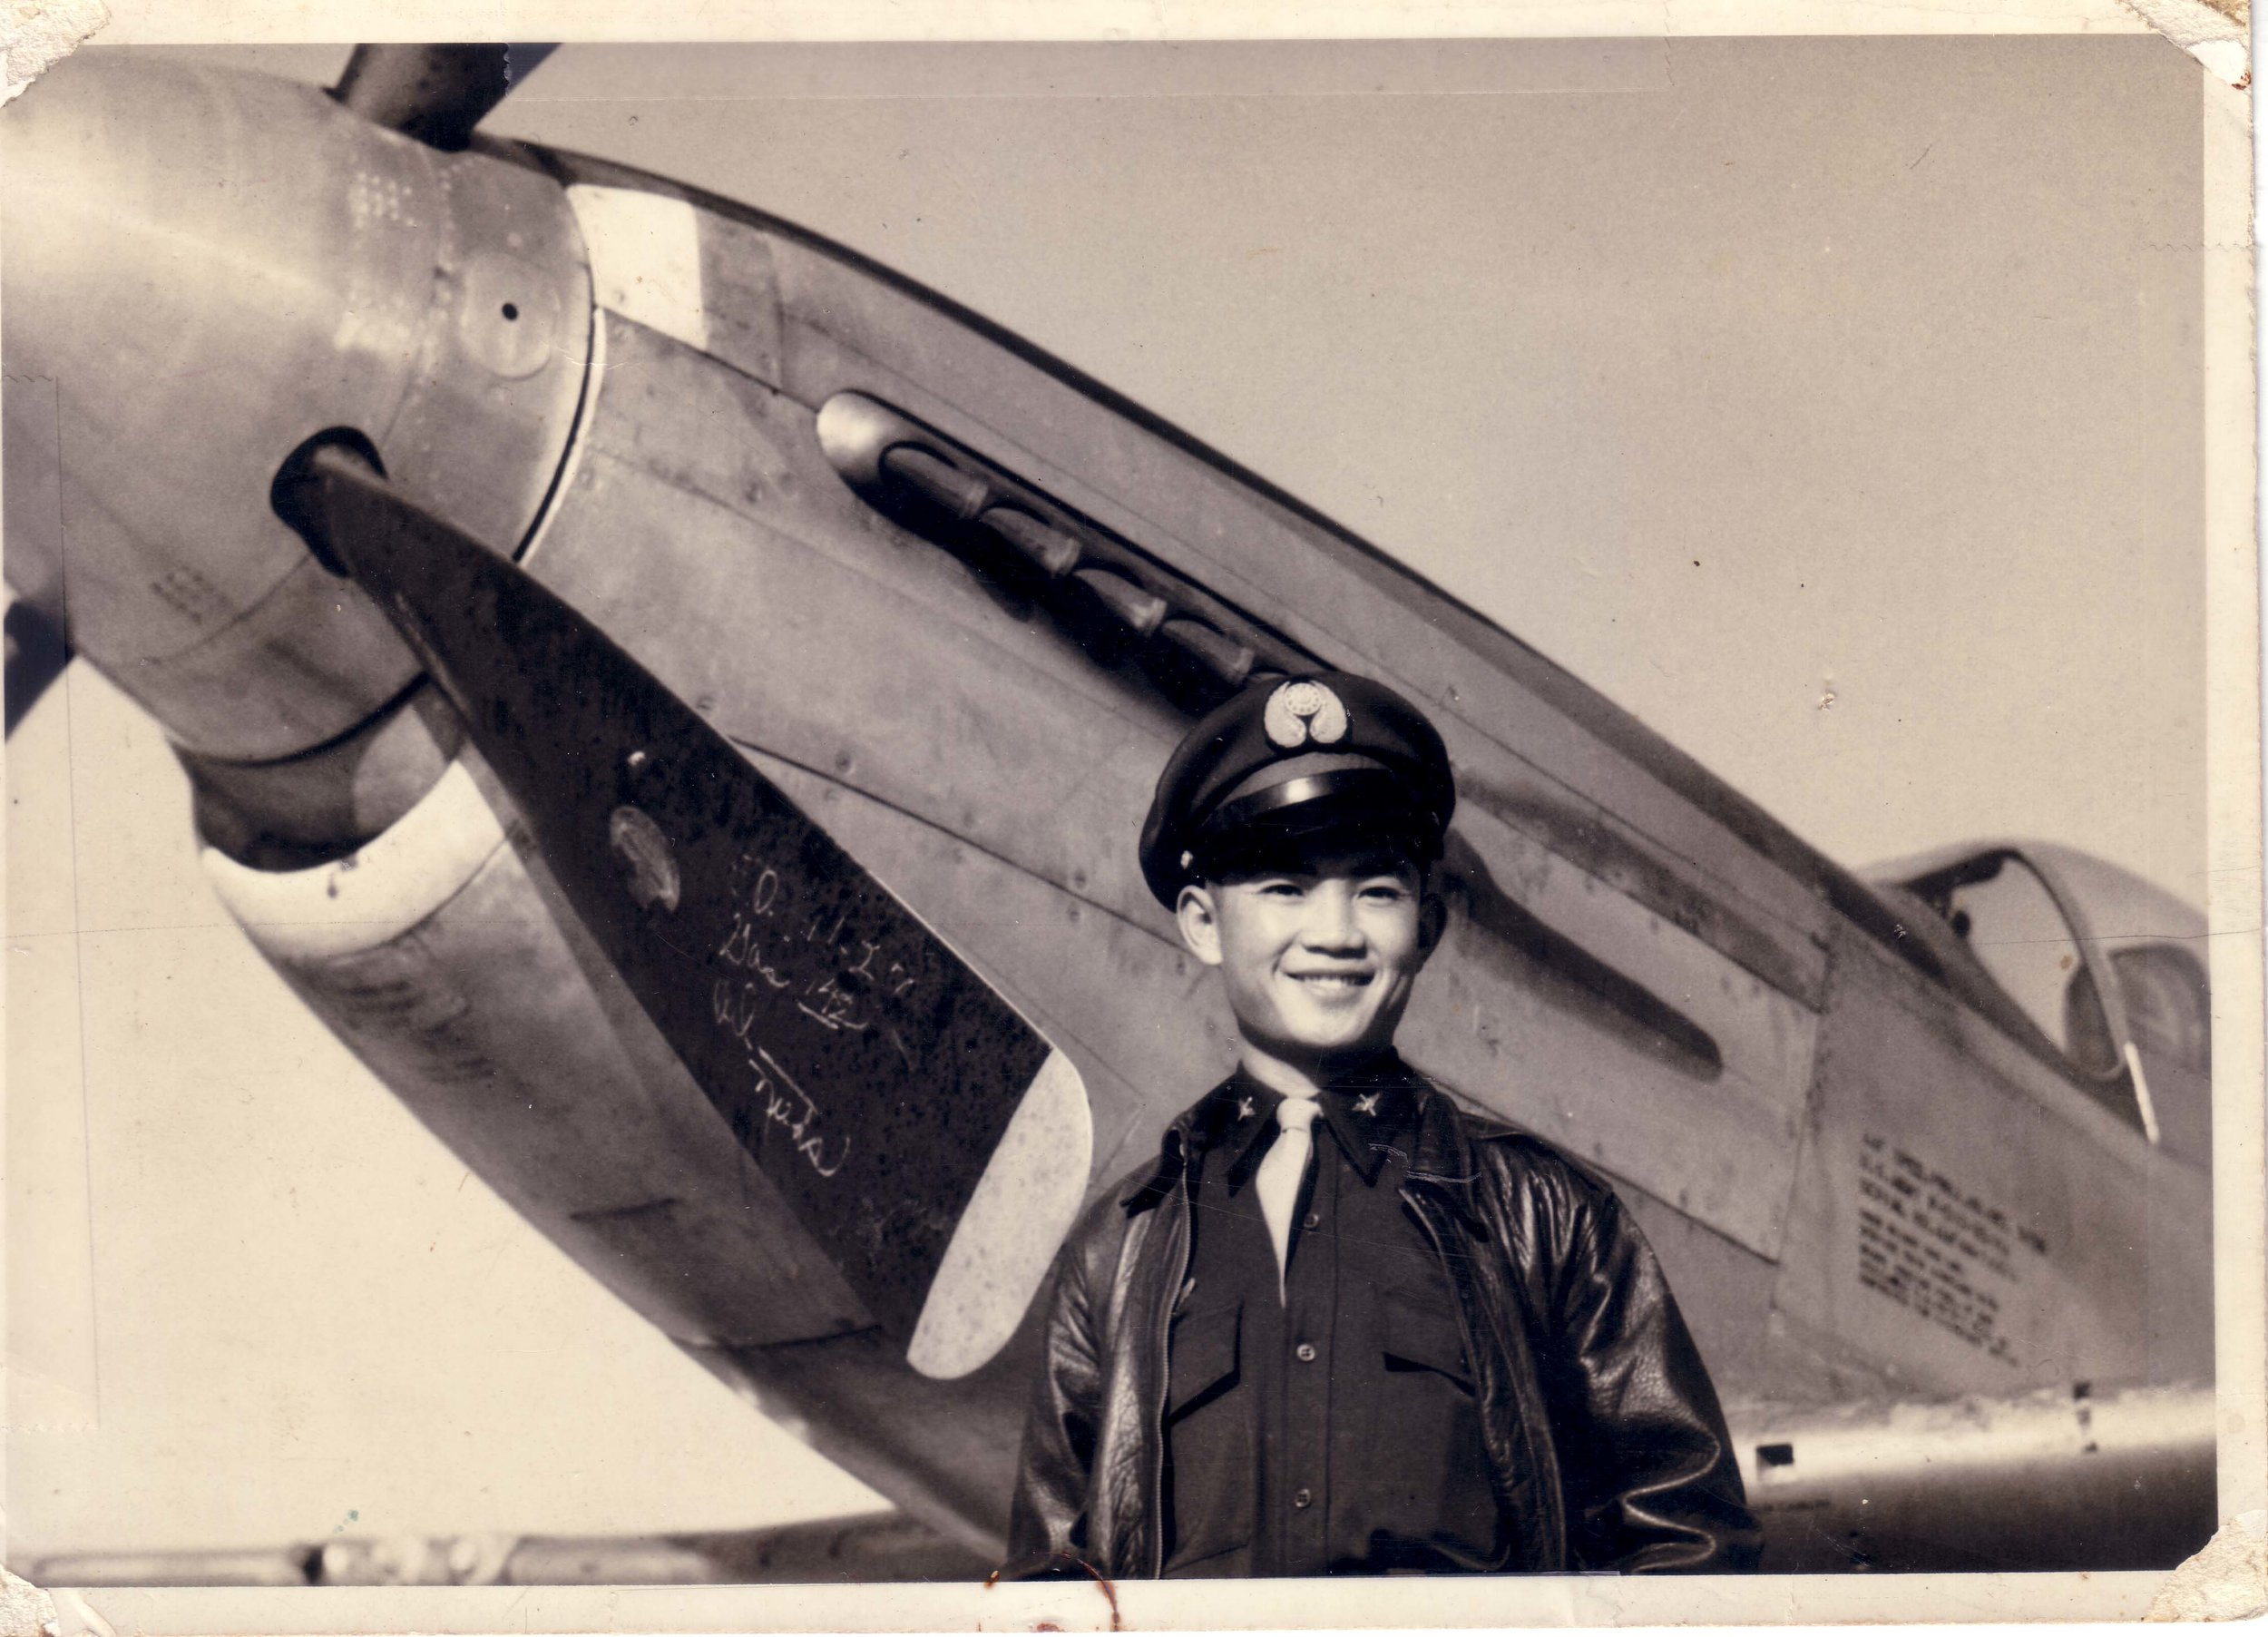 Papa Liang was a respectable Taiwan Air Force Pilot